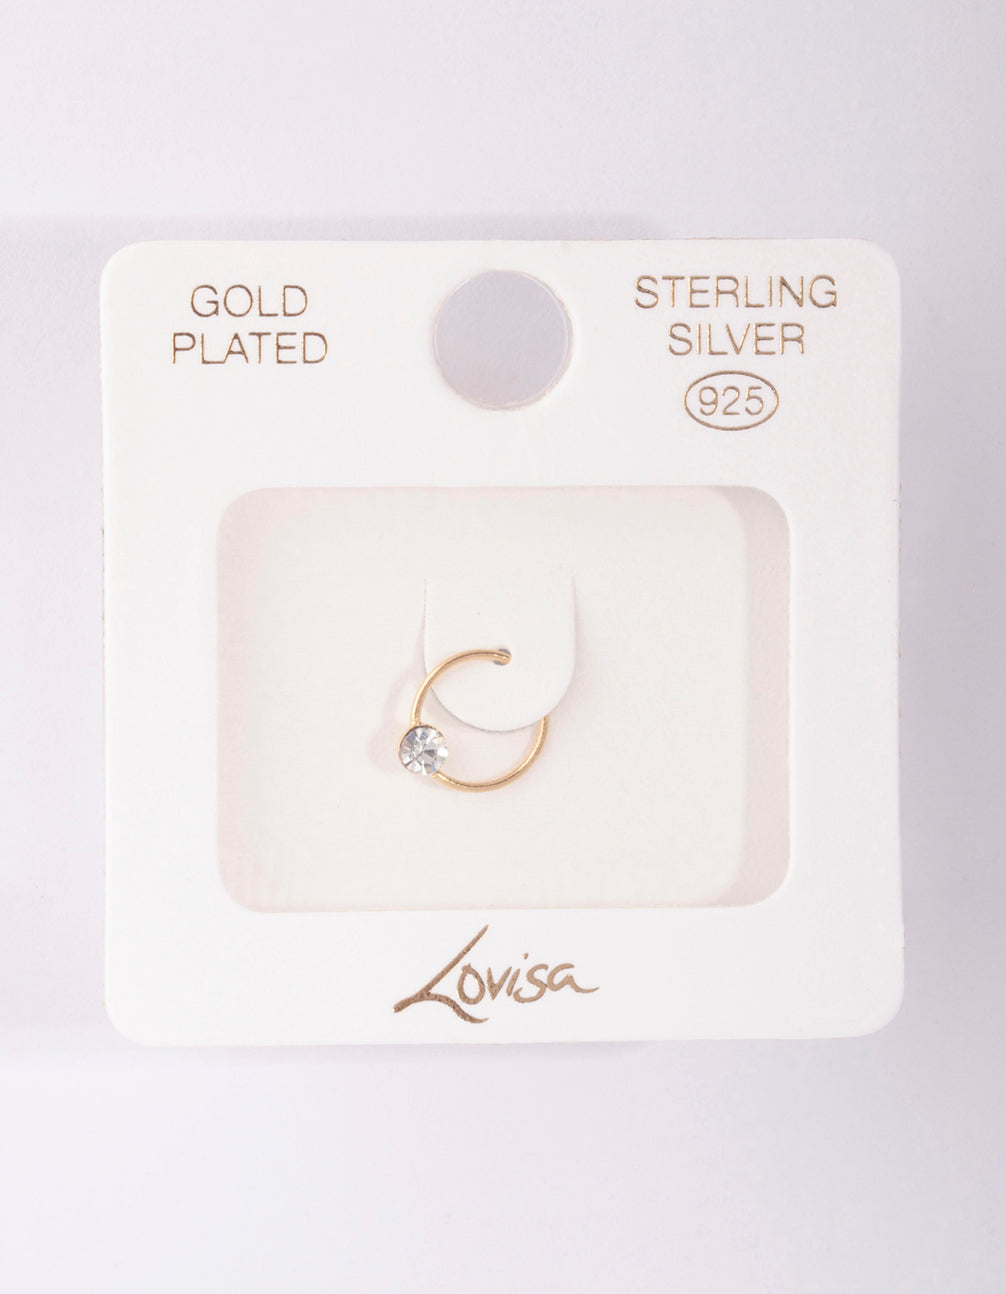 Gold Plated Sterling Silver Medium Crystal Nose Ring